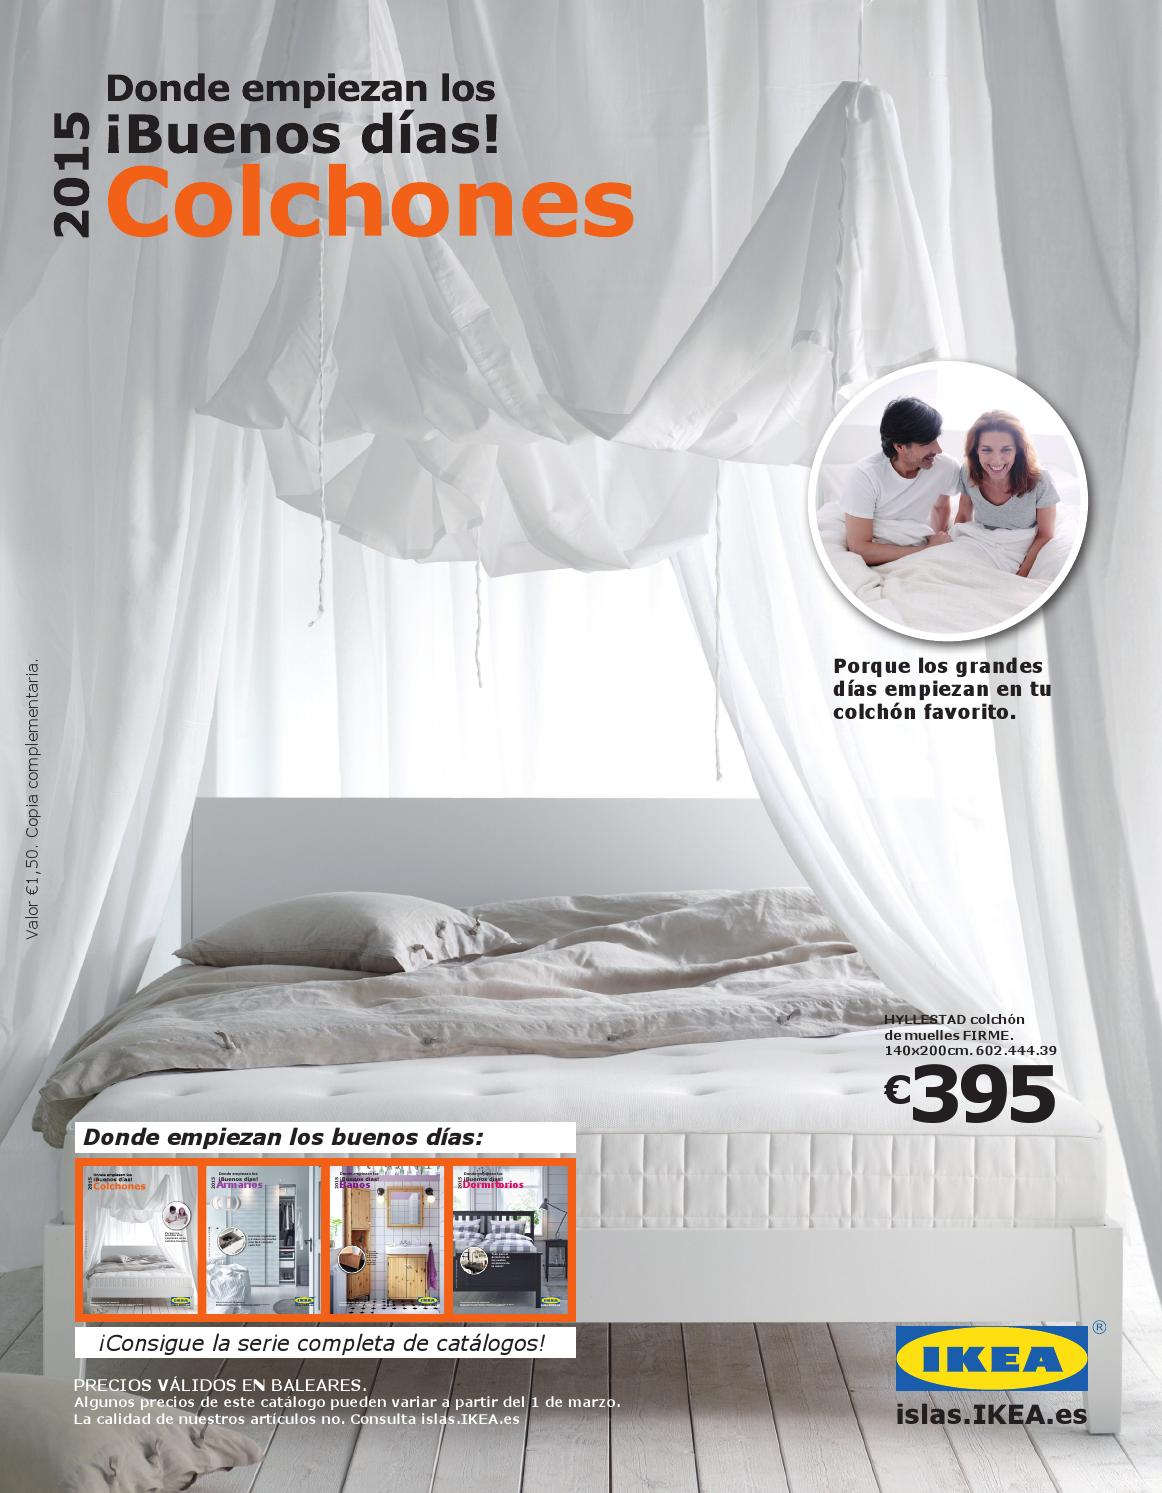 Catalogo ikea colchones 2015 baleares by losdescuentos   issuu